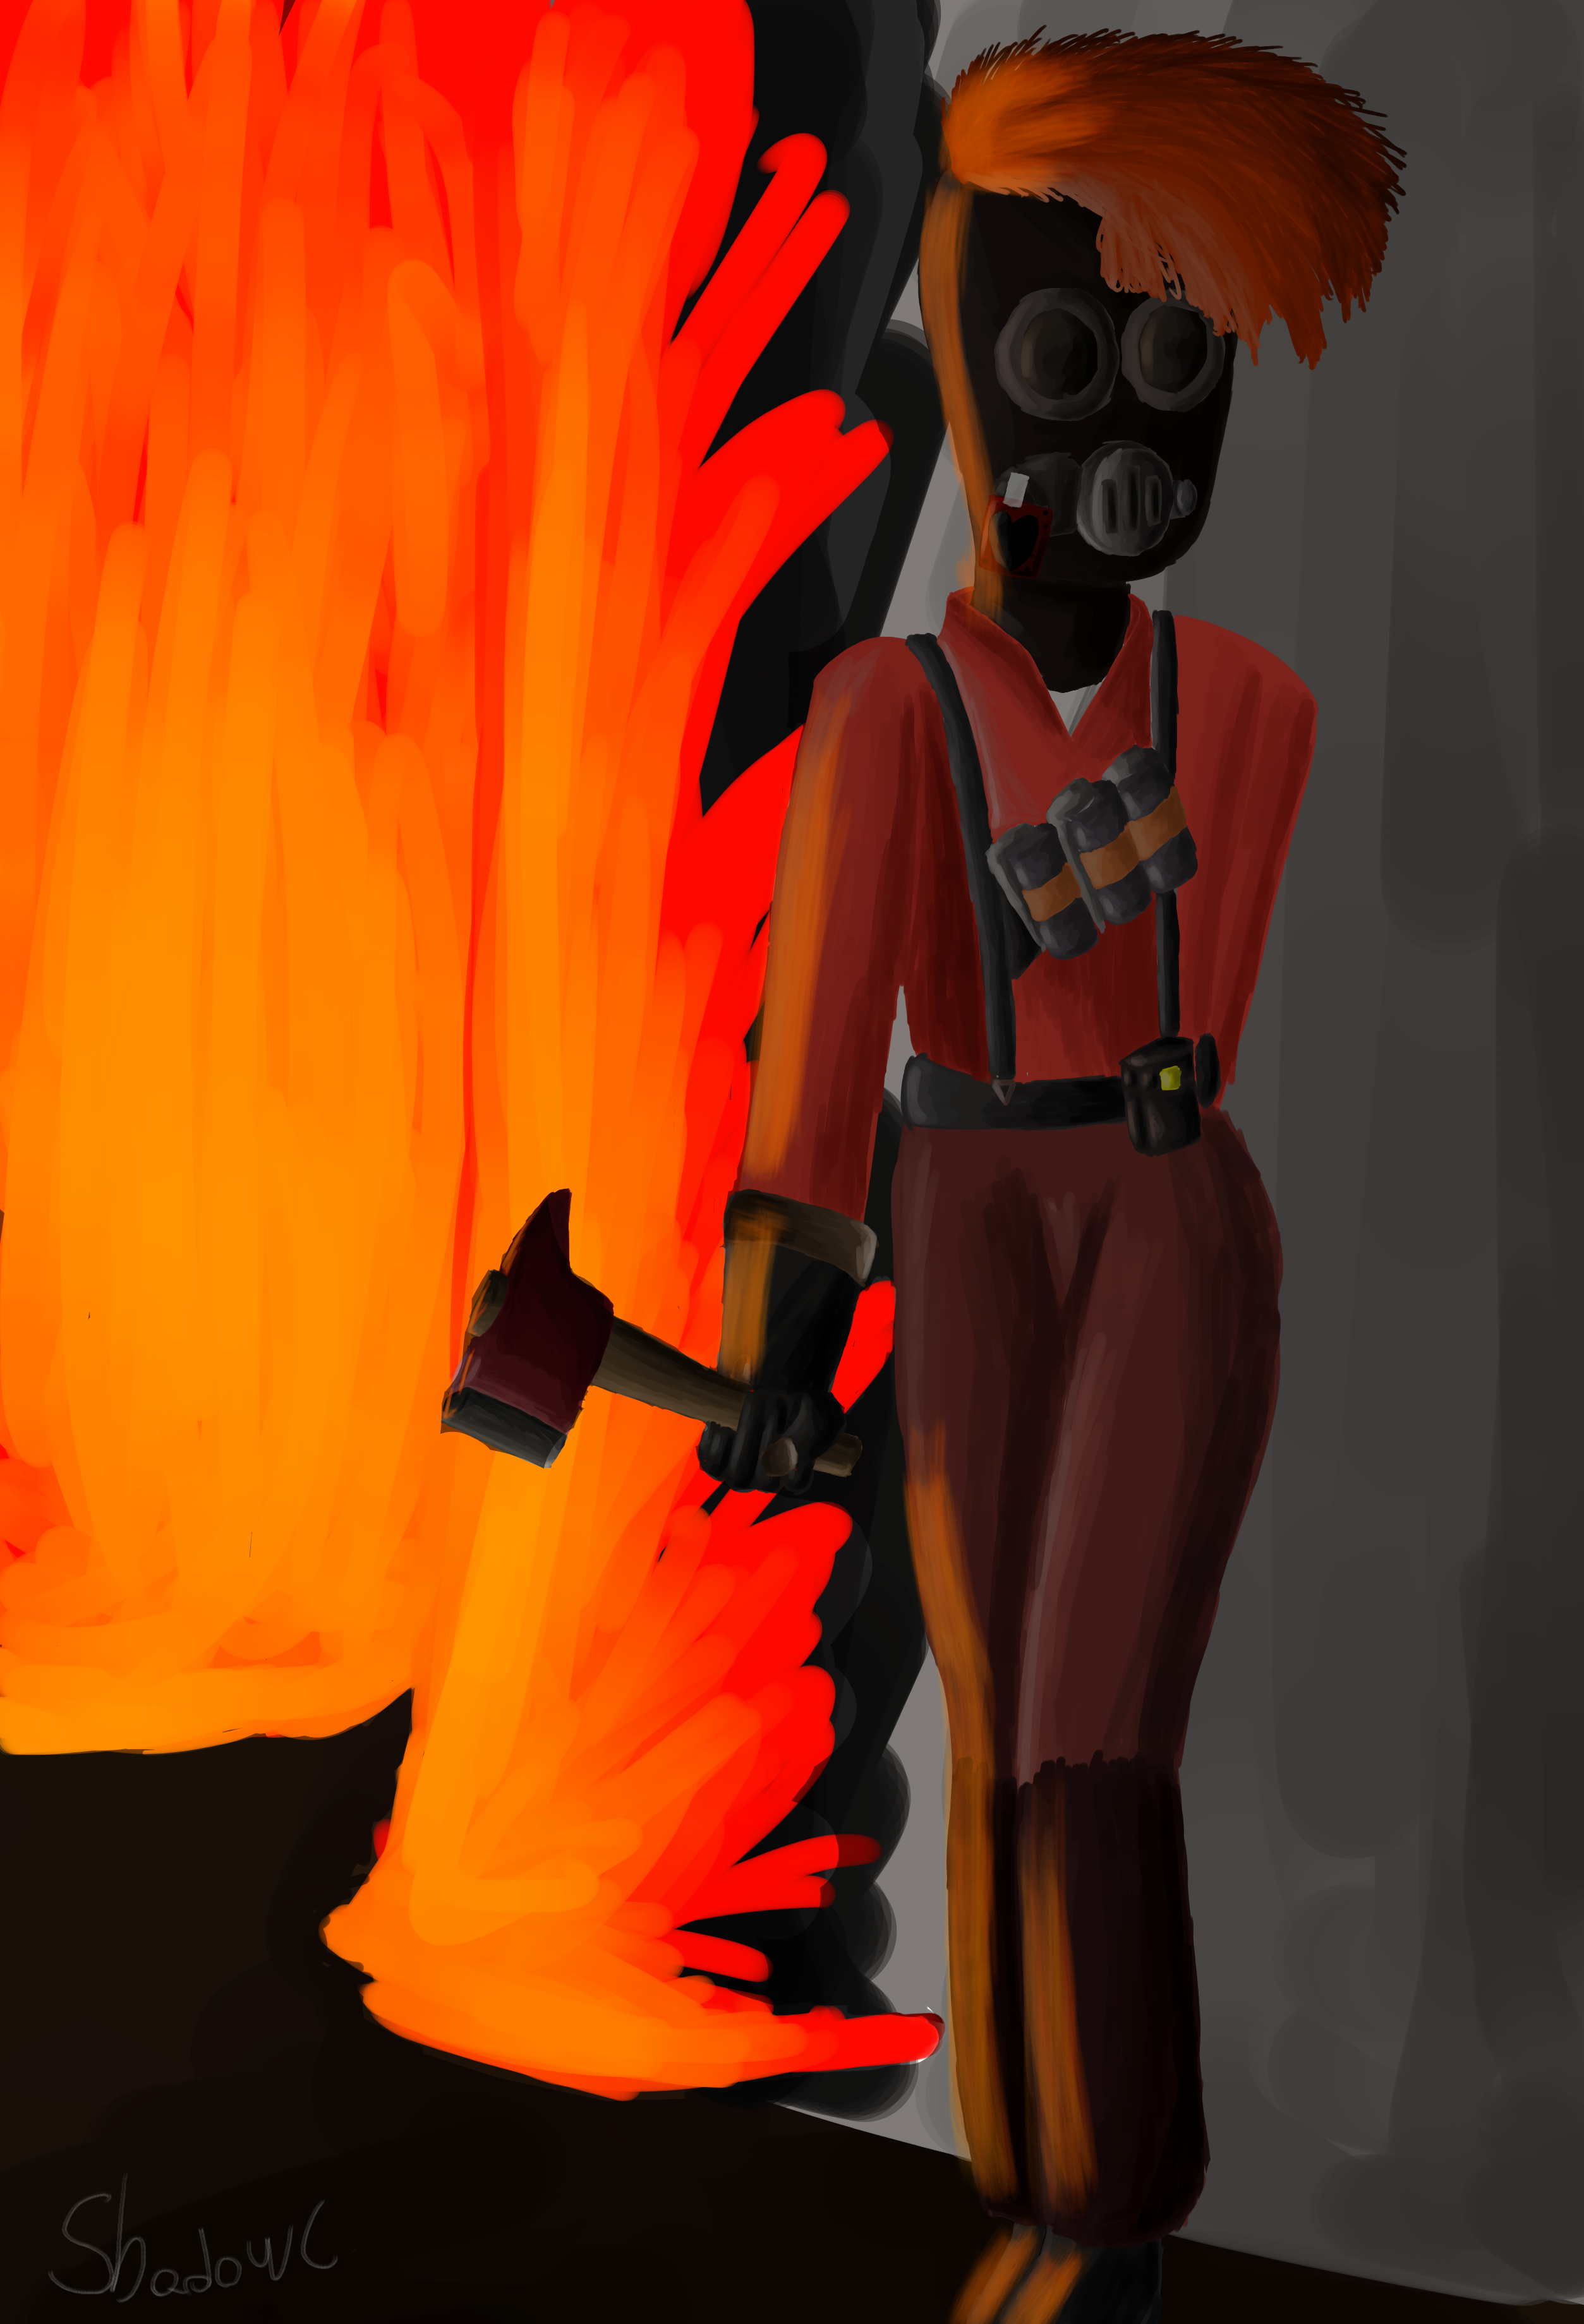 Fire behind you